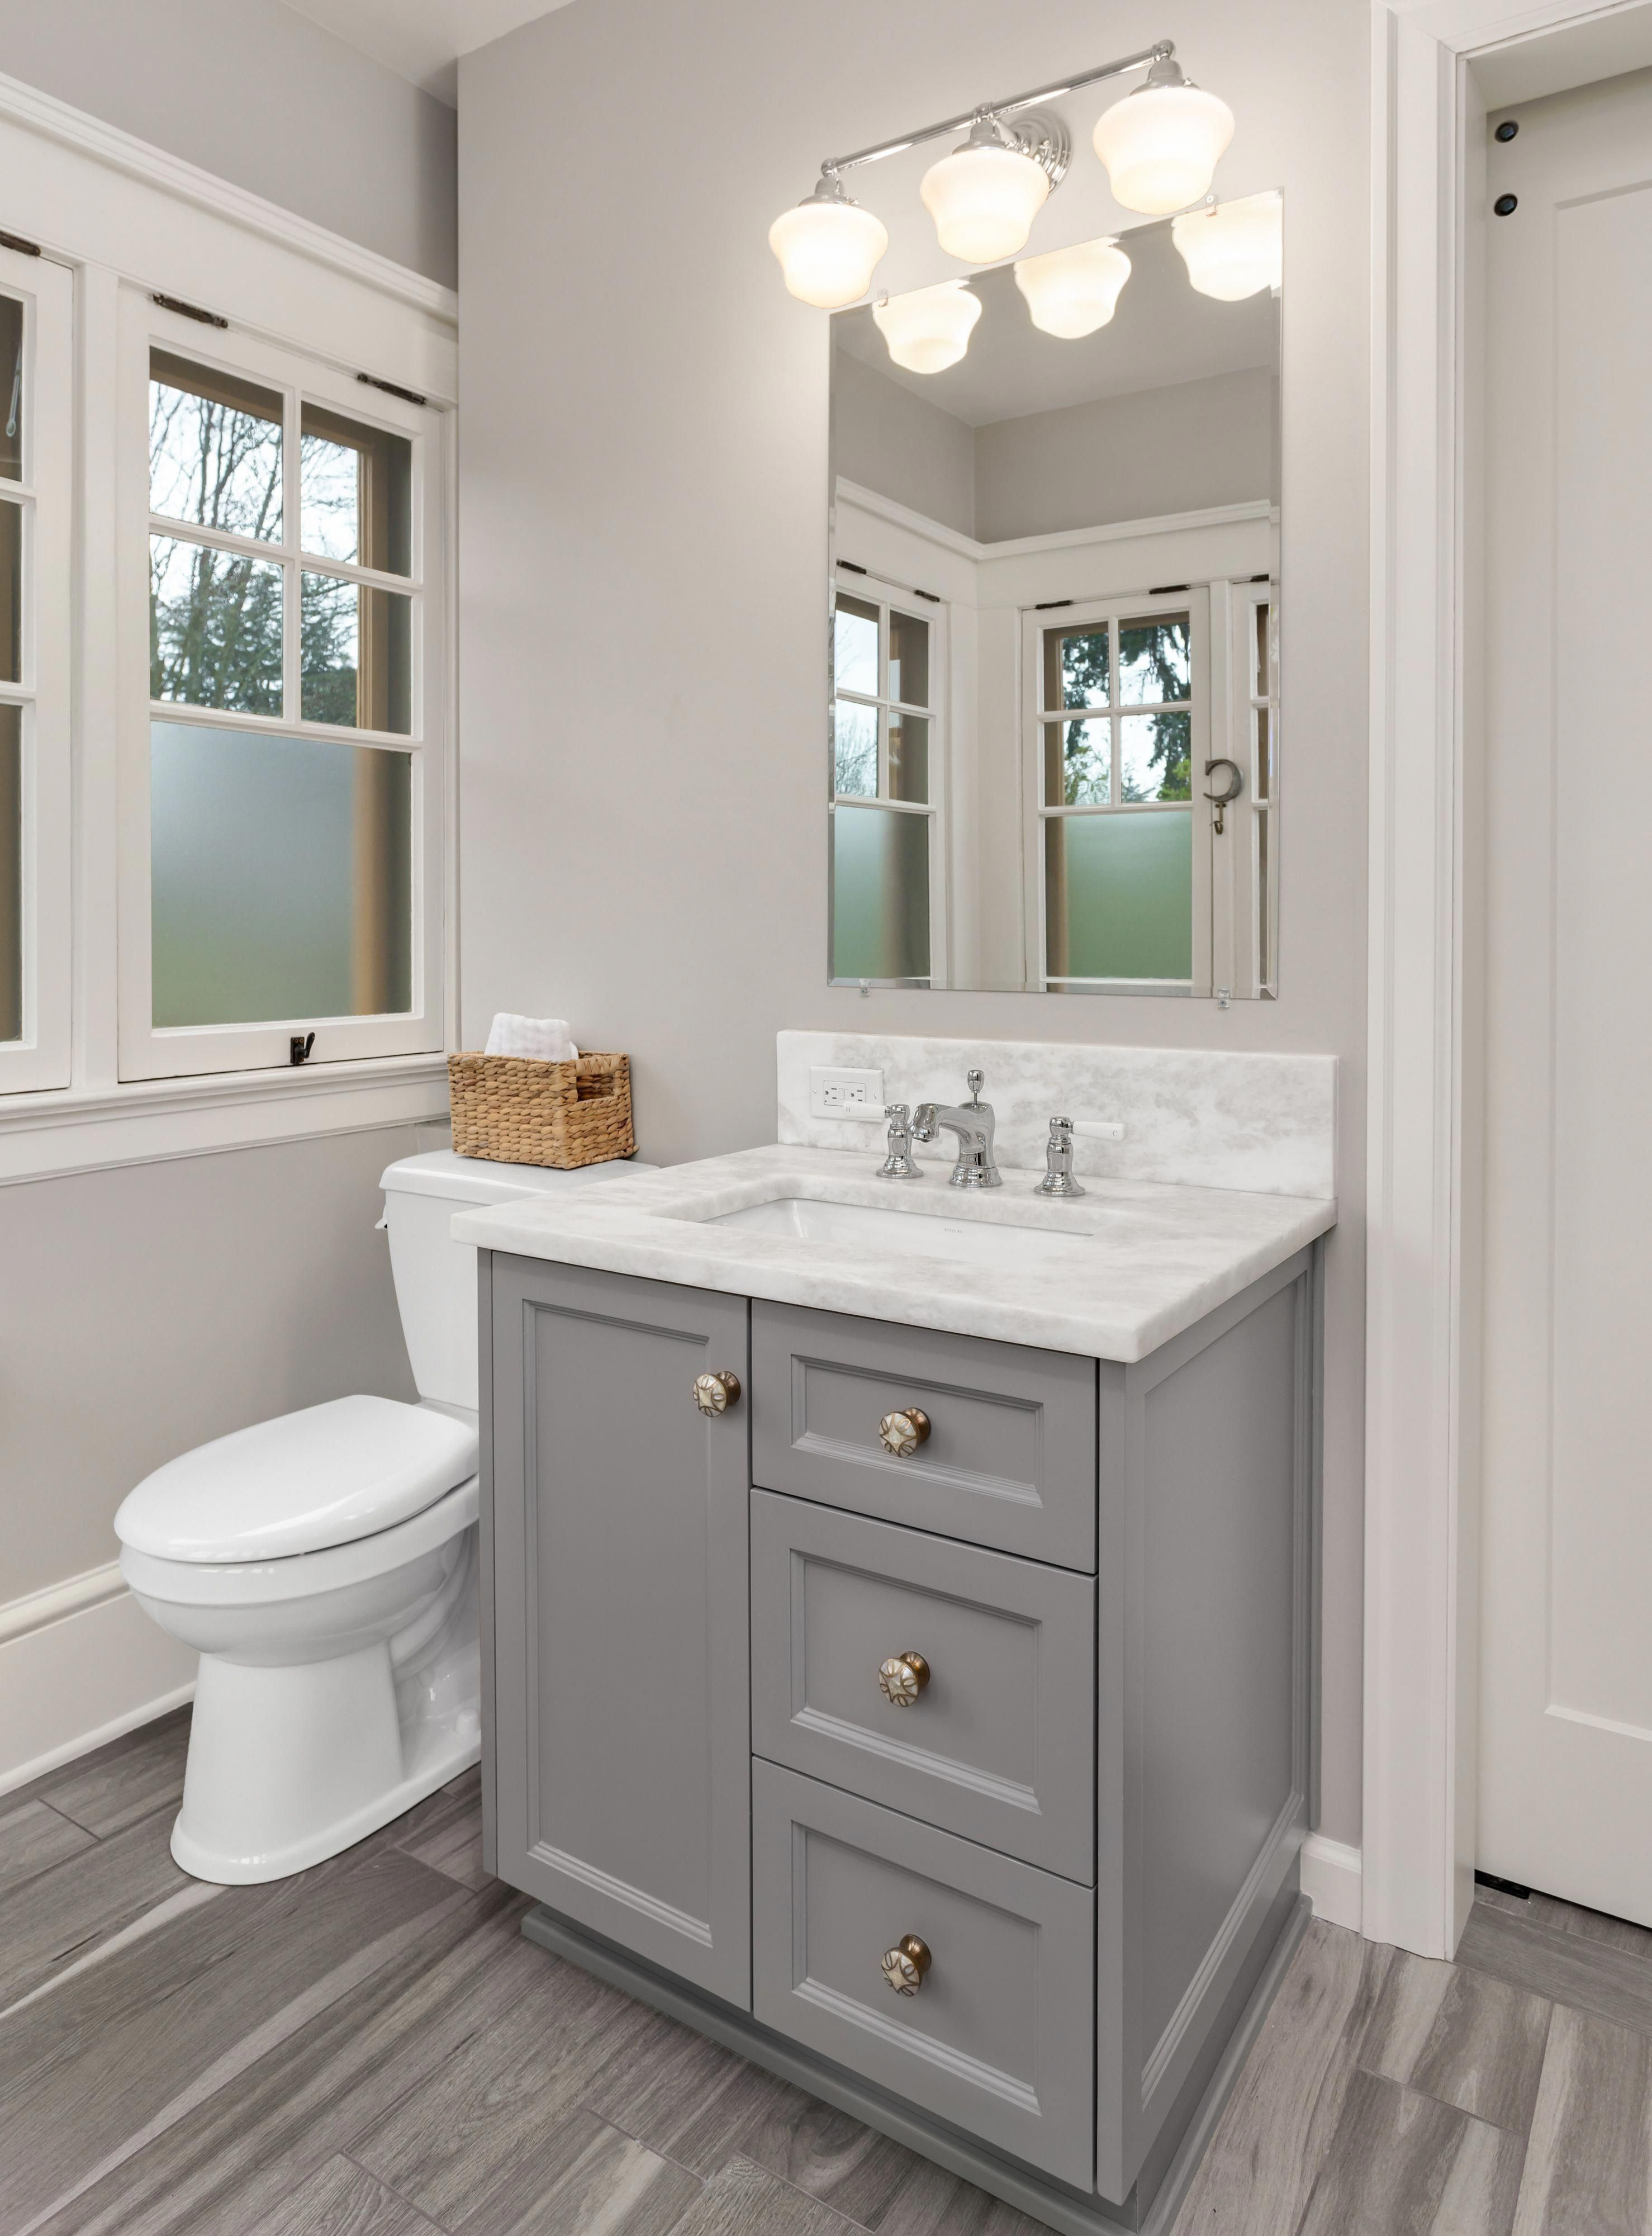 Most Popular Small Bathroom Remodel Ideas on a Bud in 2018 This beautiful look was created with cool colors and a change of layout